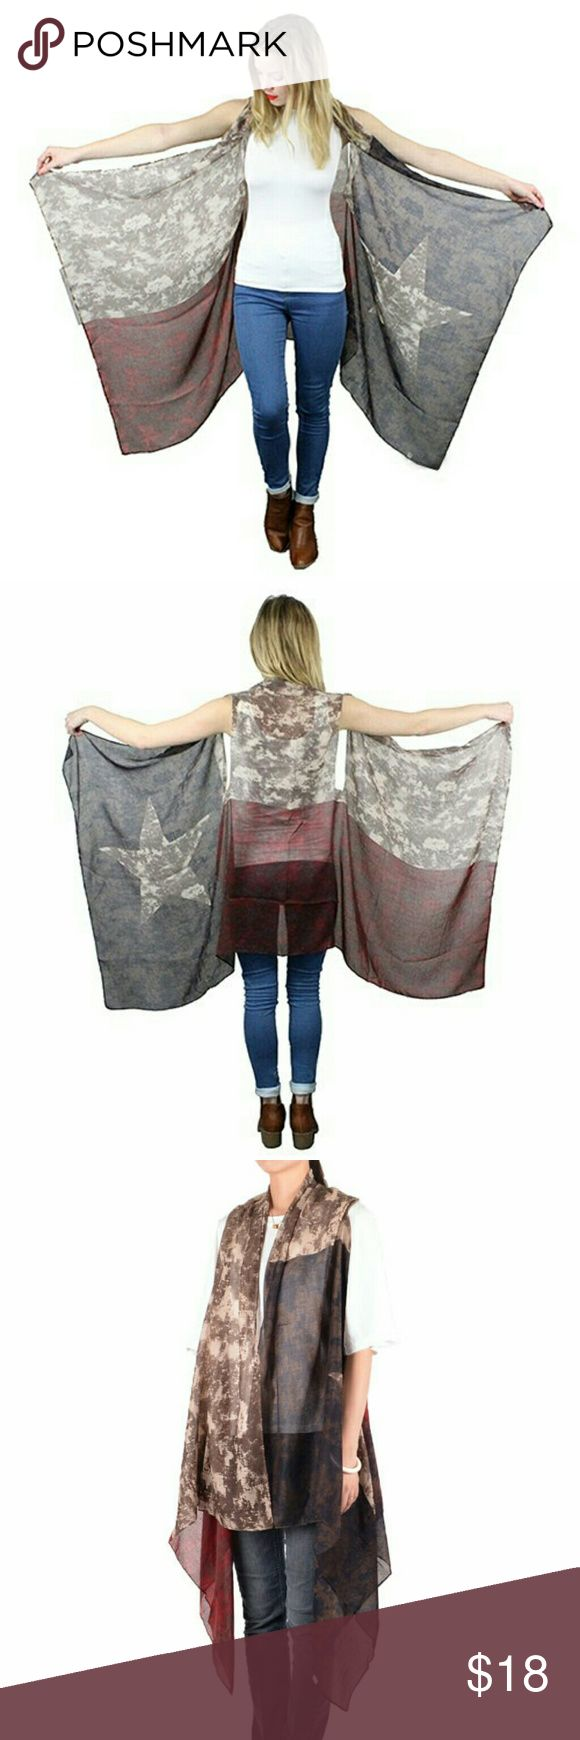 Texas Flag Kimono Vest Boho gypsy vibe. Sleeveless kimono vest featuring a vintage style distressed Texas state flag.  One size fits most.  100% Viscose.  Excellent condition! Boutique Jackets & Coats Vests